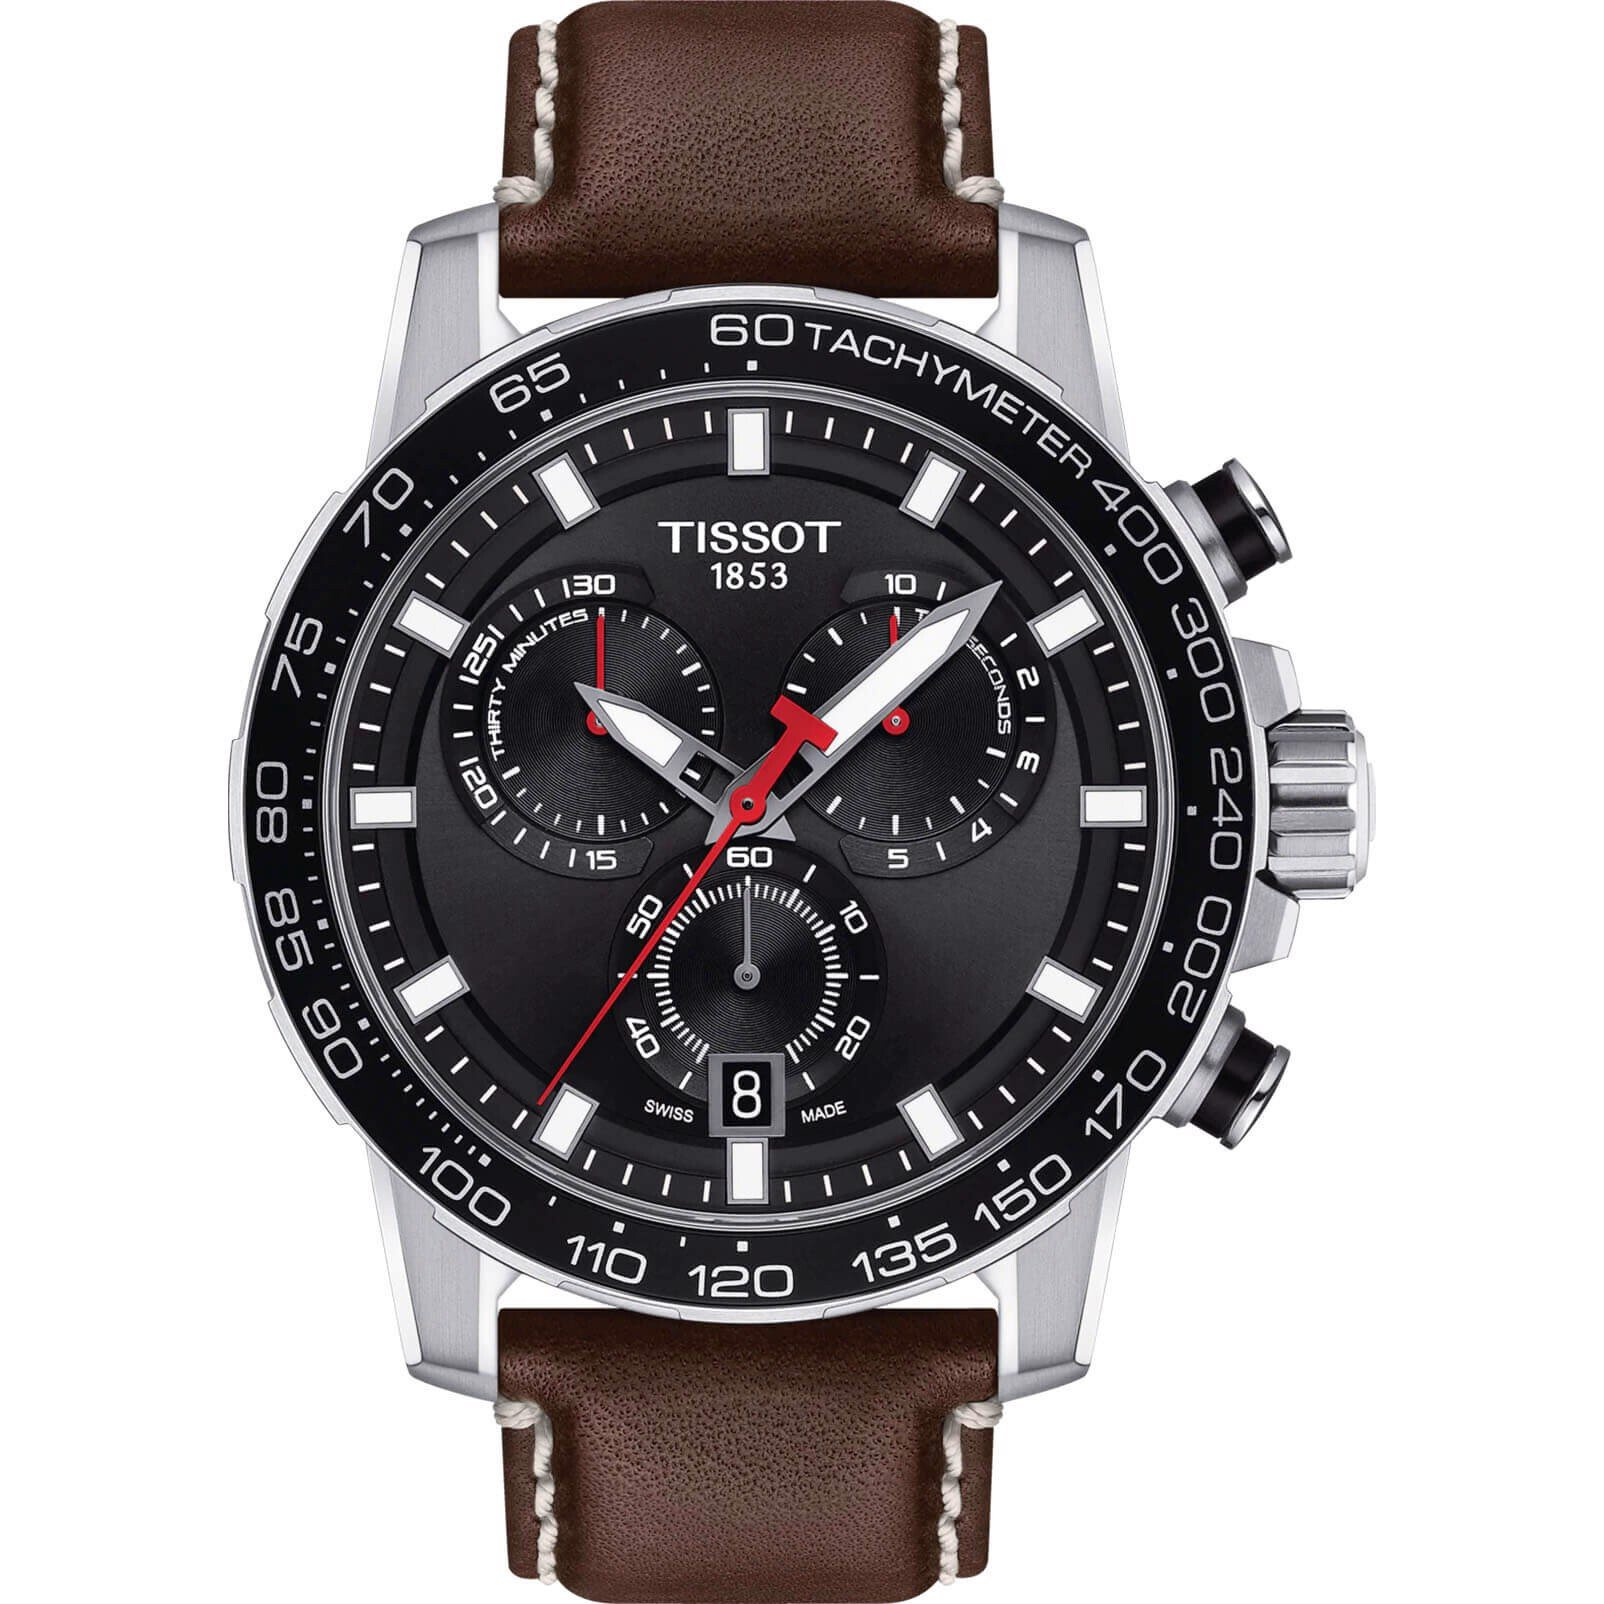 Tissot Supersport T125.617.16.051.01 Chrono 45.5mm